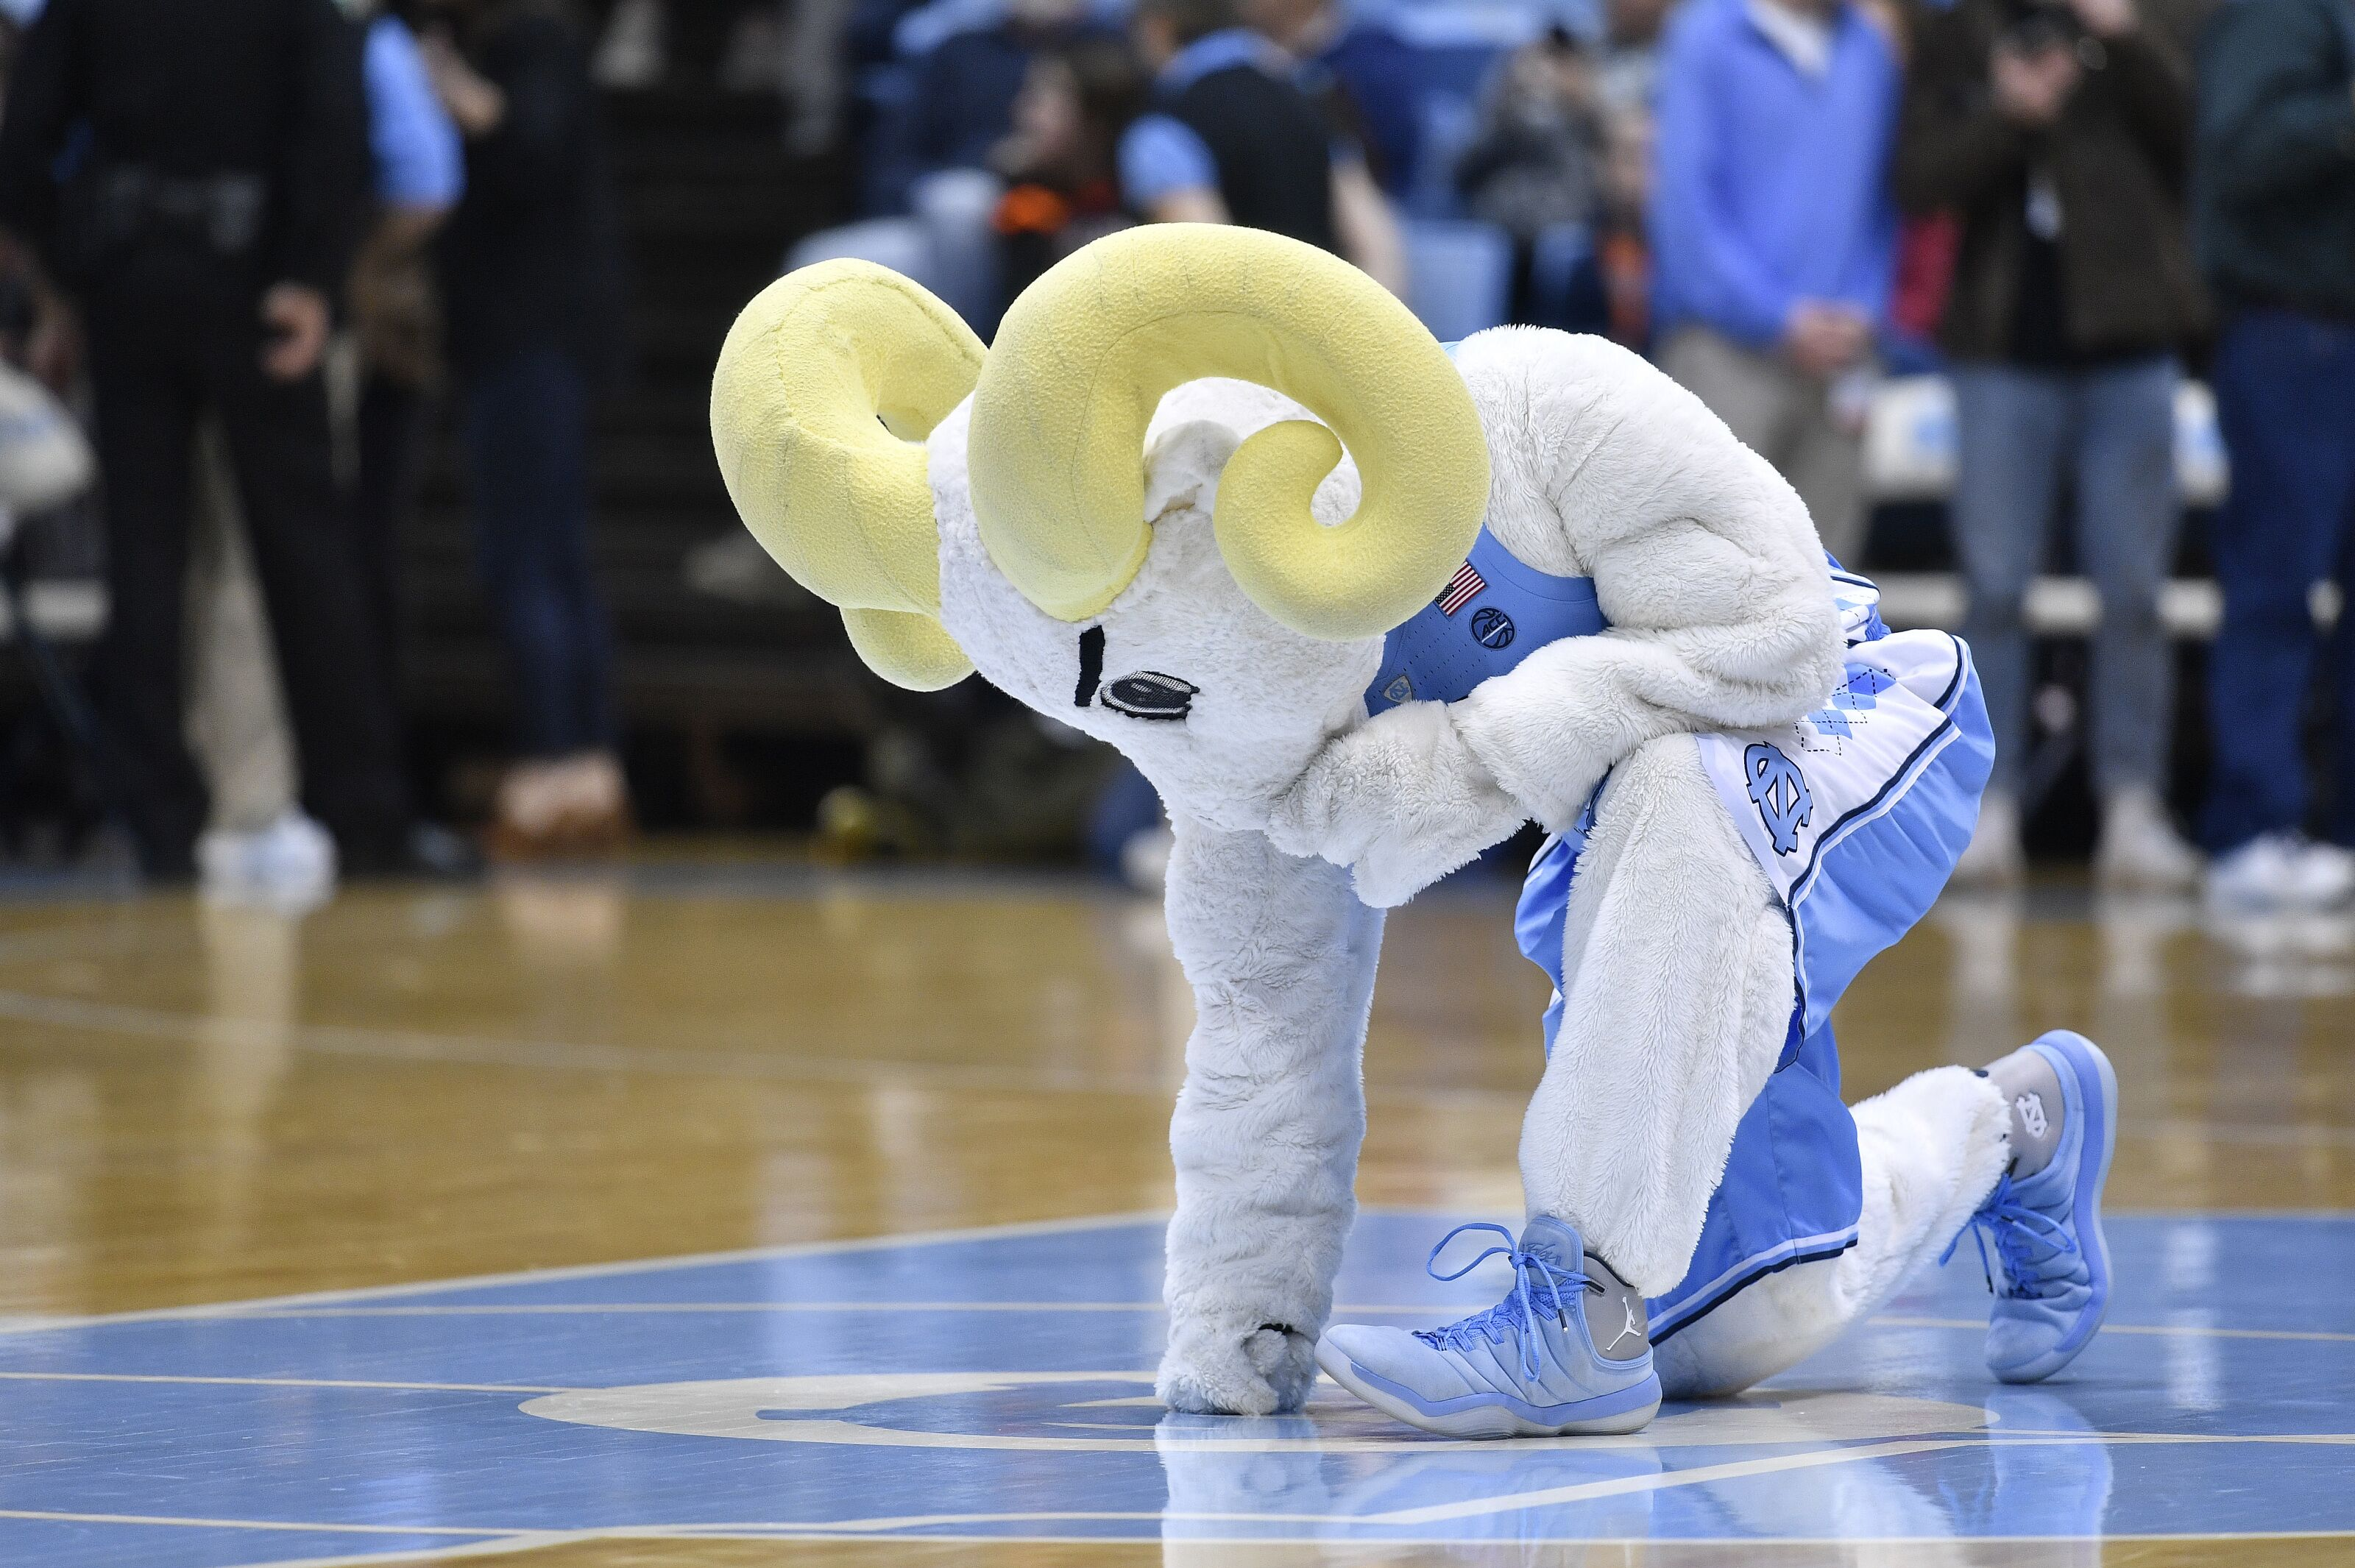 UNC Basketball: Tar Heels fall to Boston College in Chestnut Hill